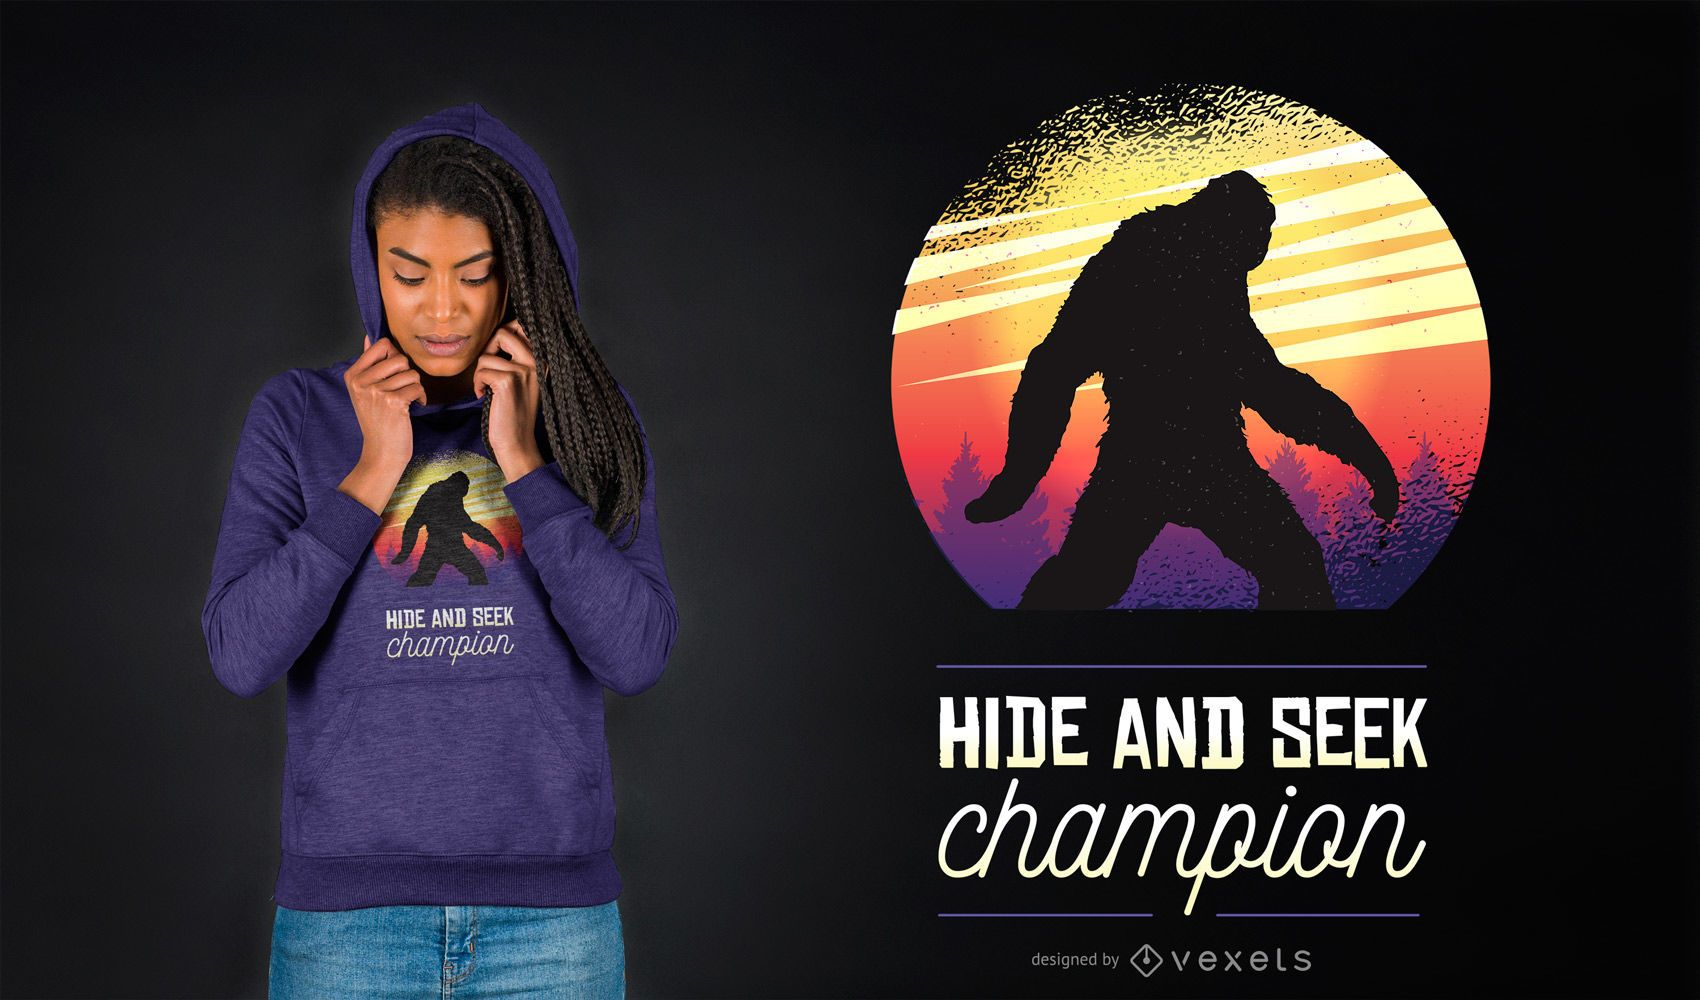 f7f6857f9a5e BigFoot Hide And Seek Champion Funny Quote T-shirt Design. Download Large  Image 1700x1000px. license image; user